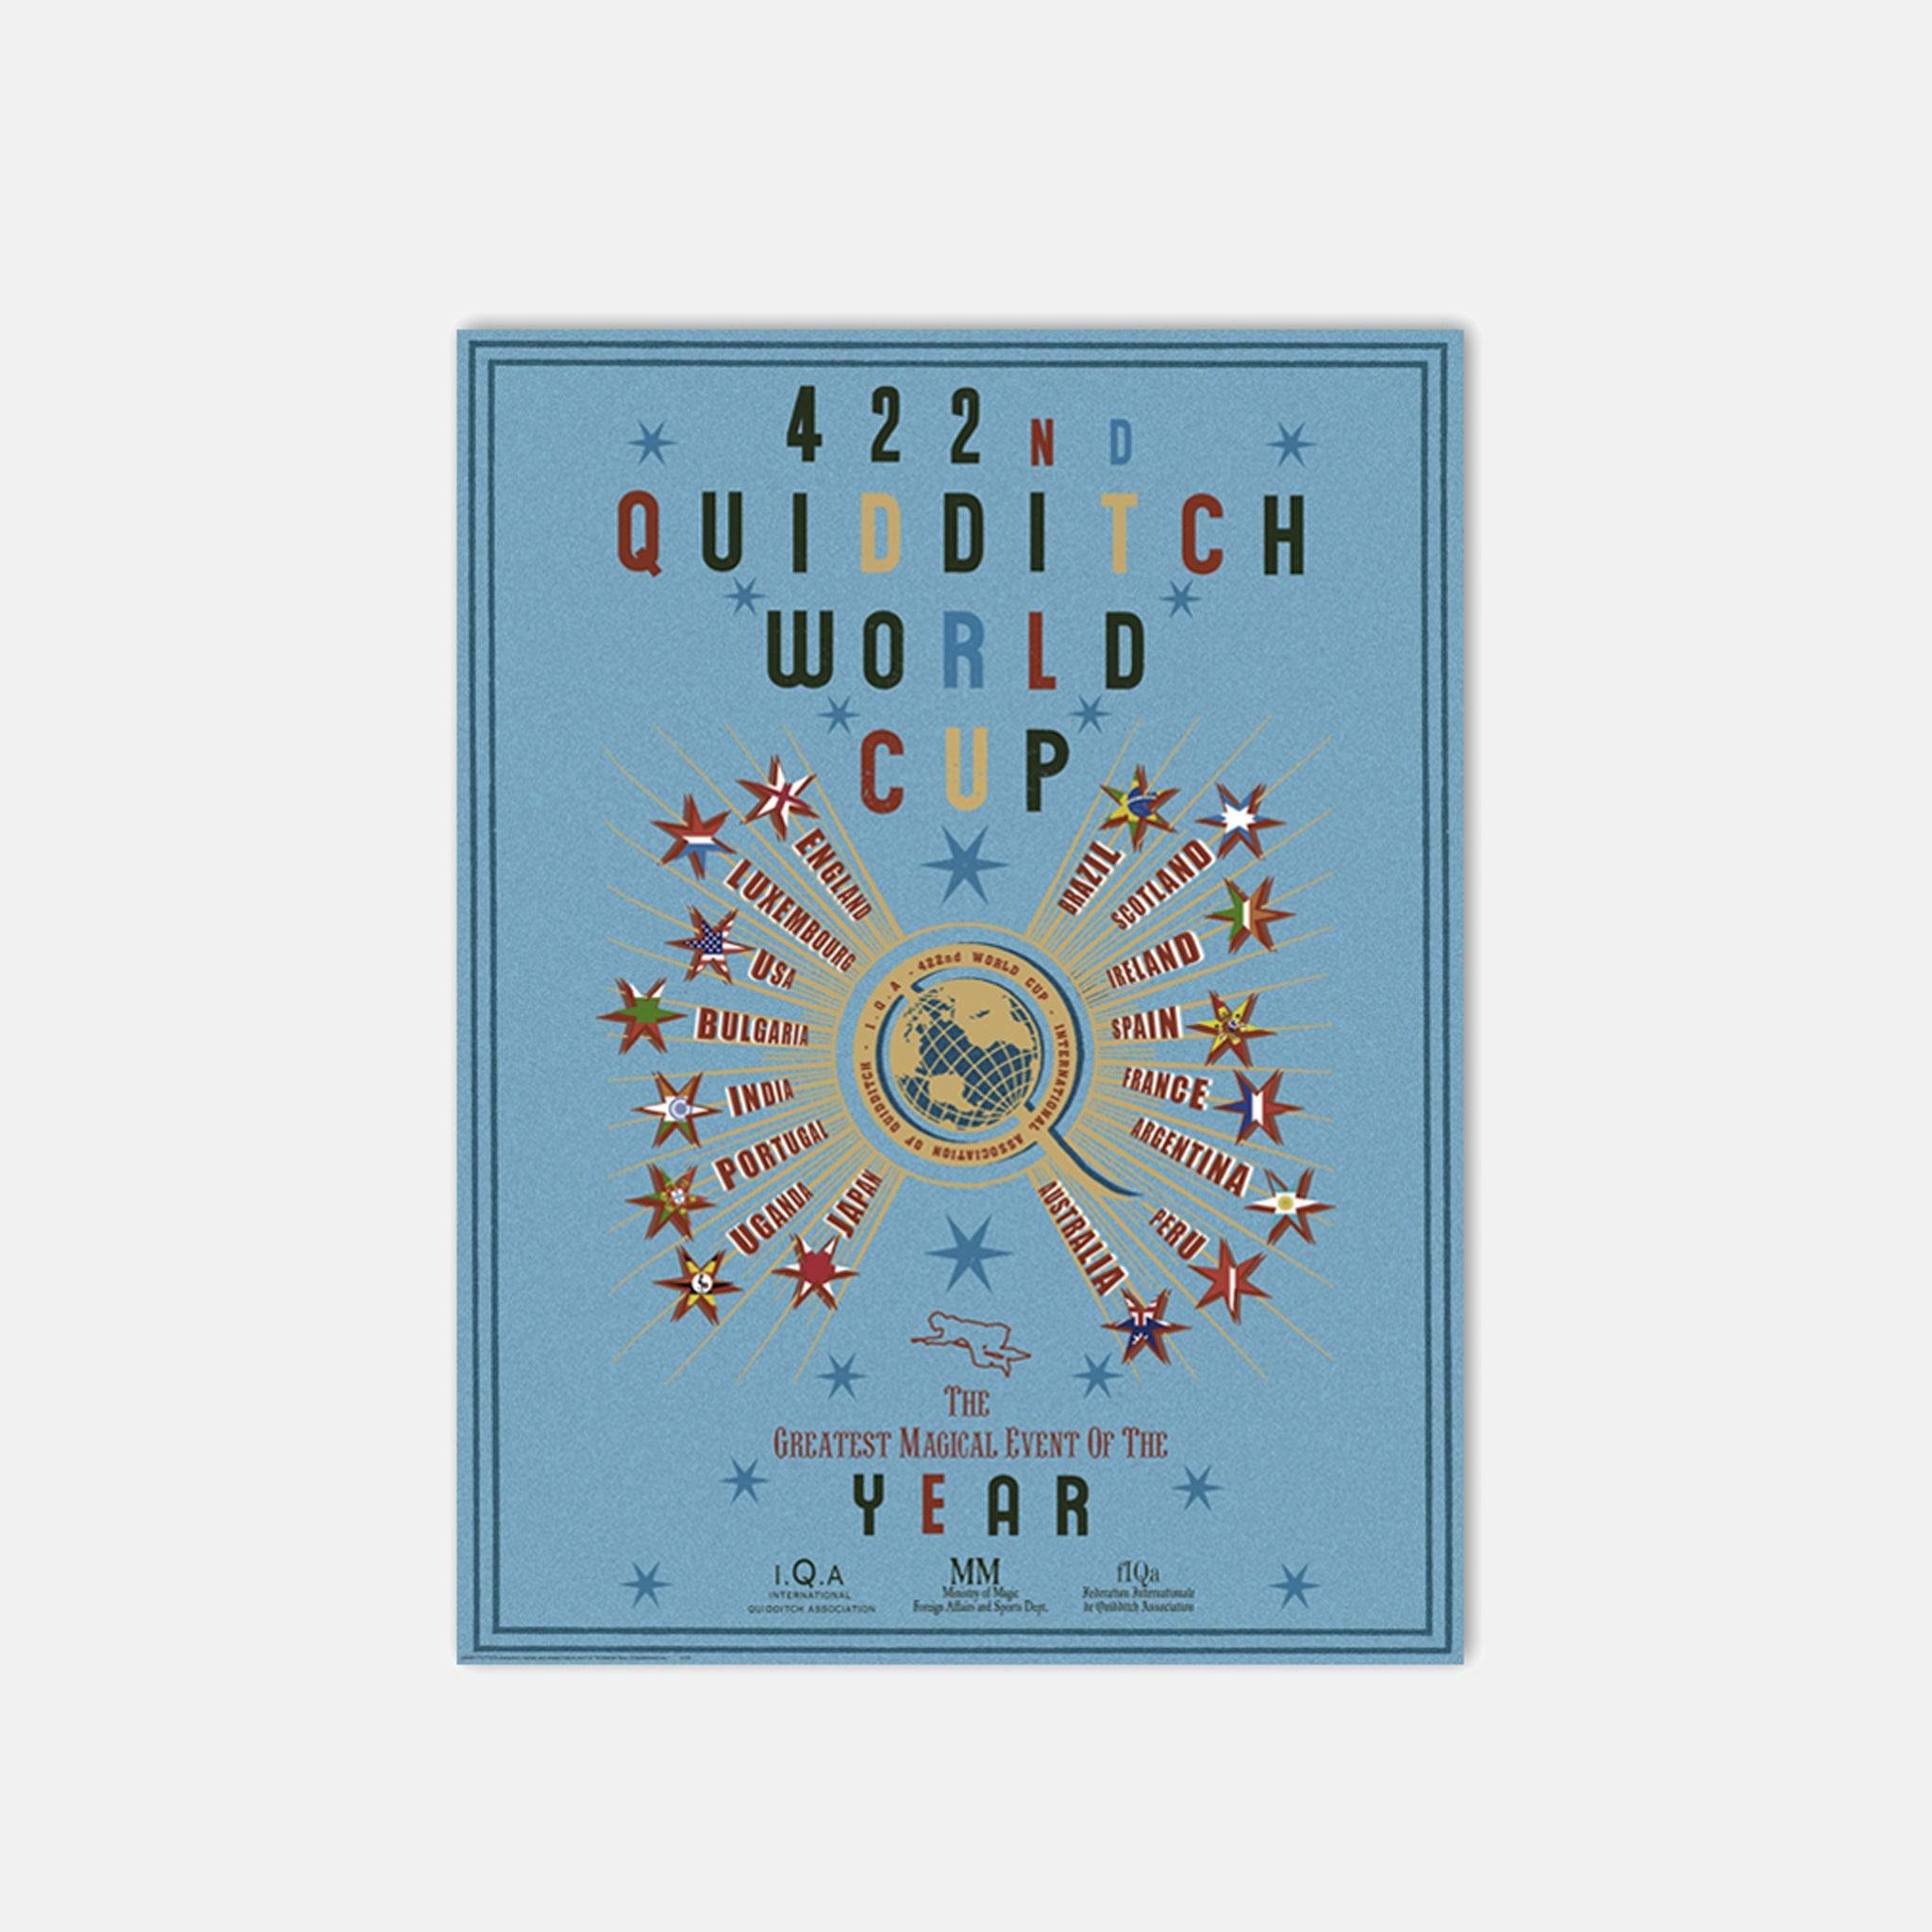 Quidditch World Cup Print